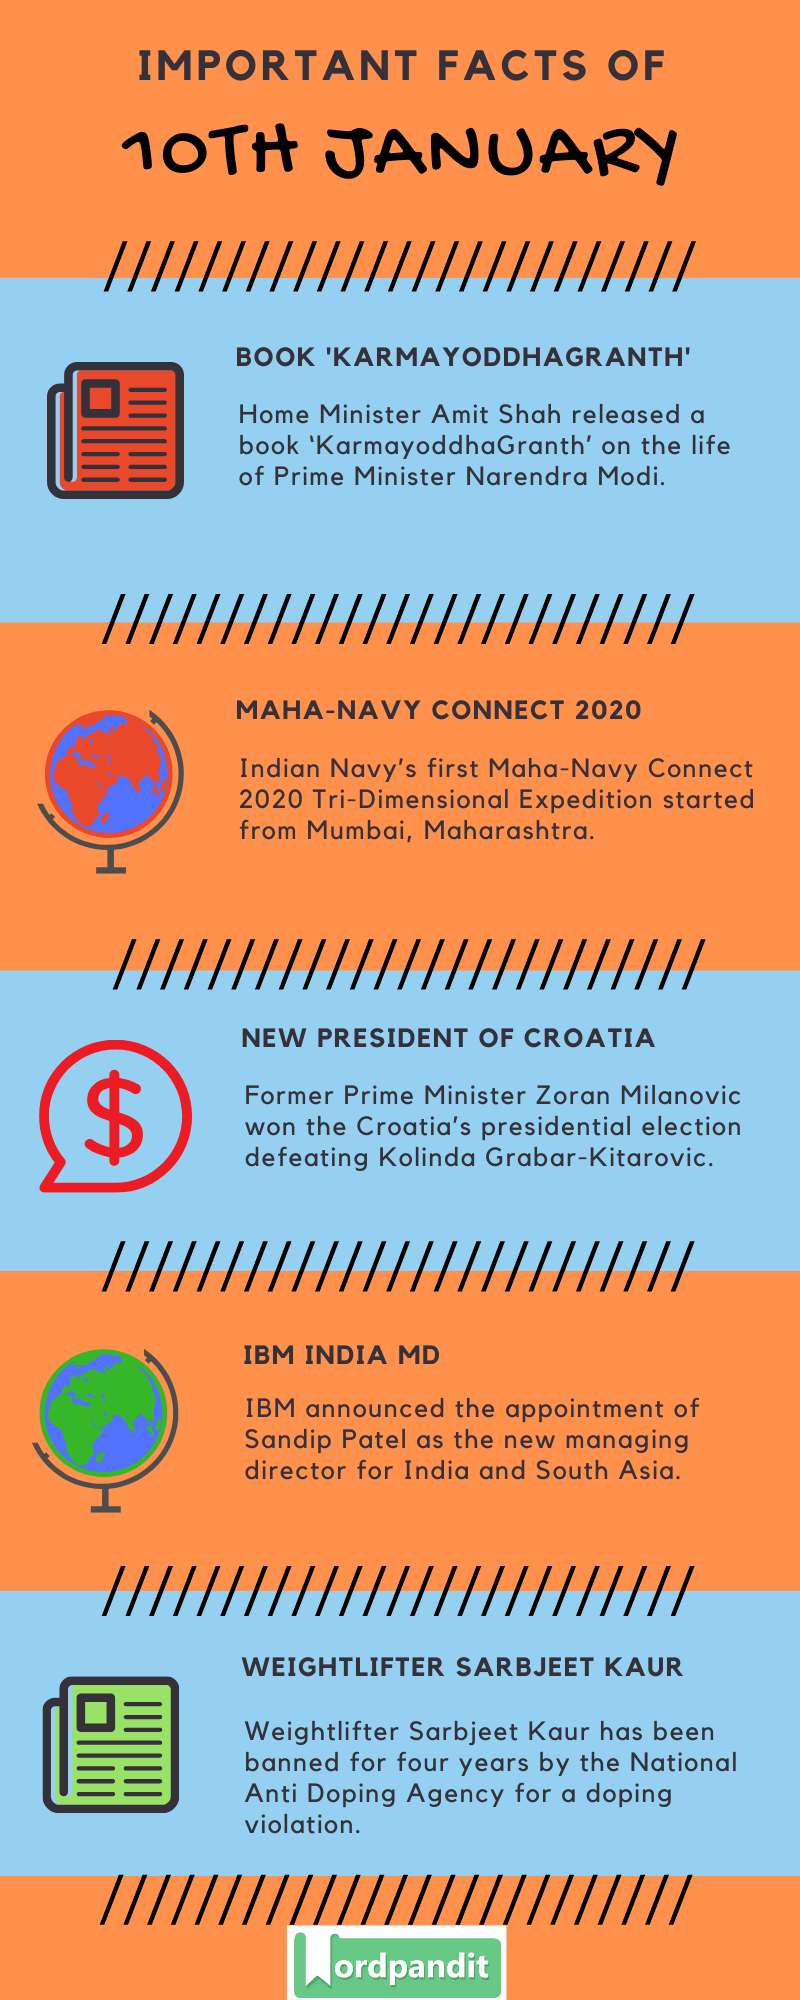 Daily Current Affairs 10 January 2020 Current Affairs Quiz 10 January 2020 Current Affairs Infographic